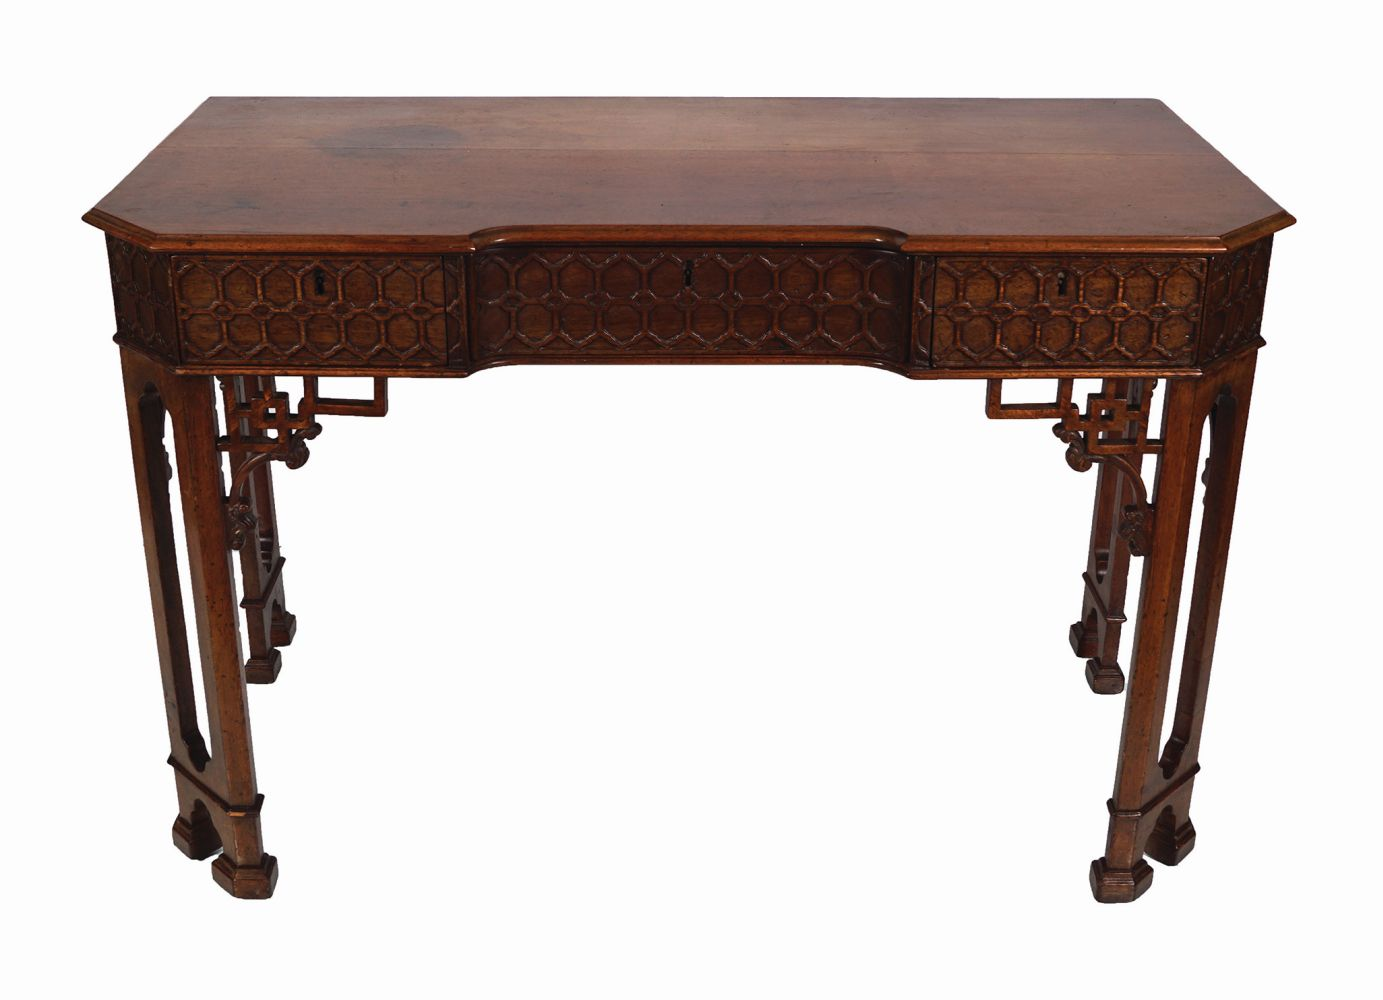 18TH-CENTURY PERIOD CHINESE CHIPPENDALE TABLE